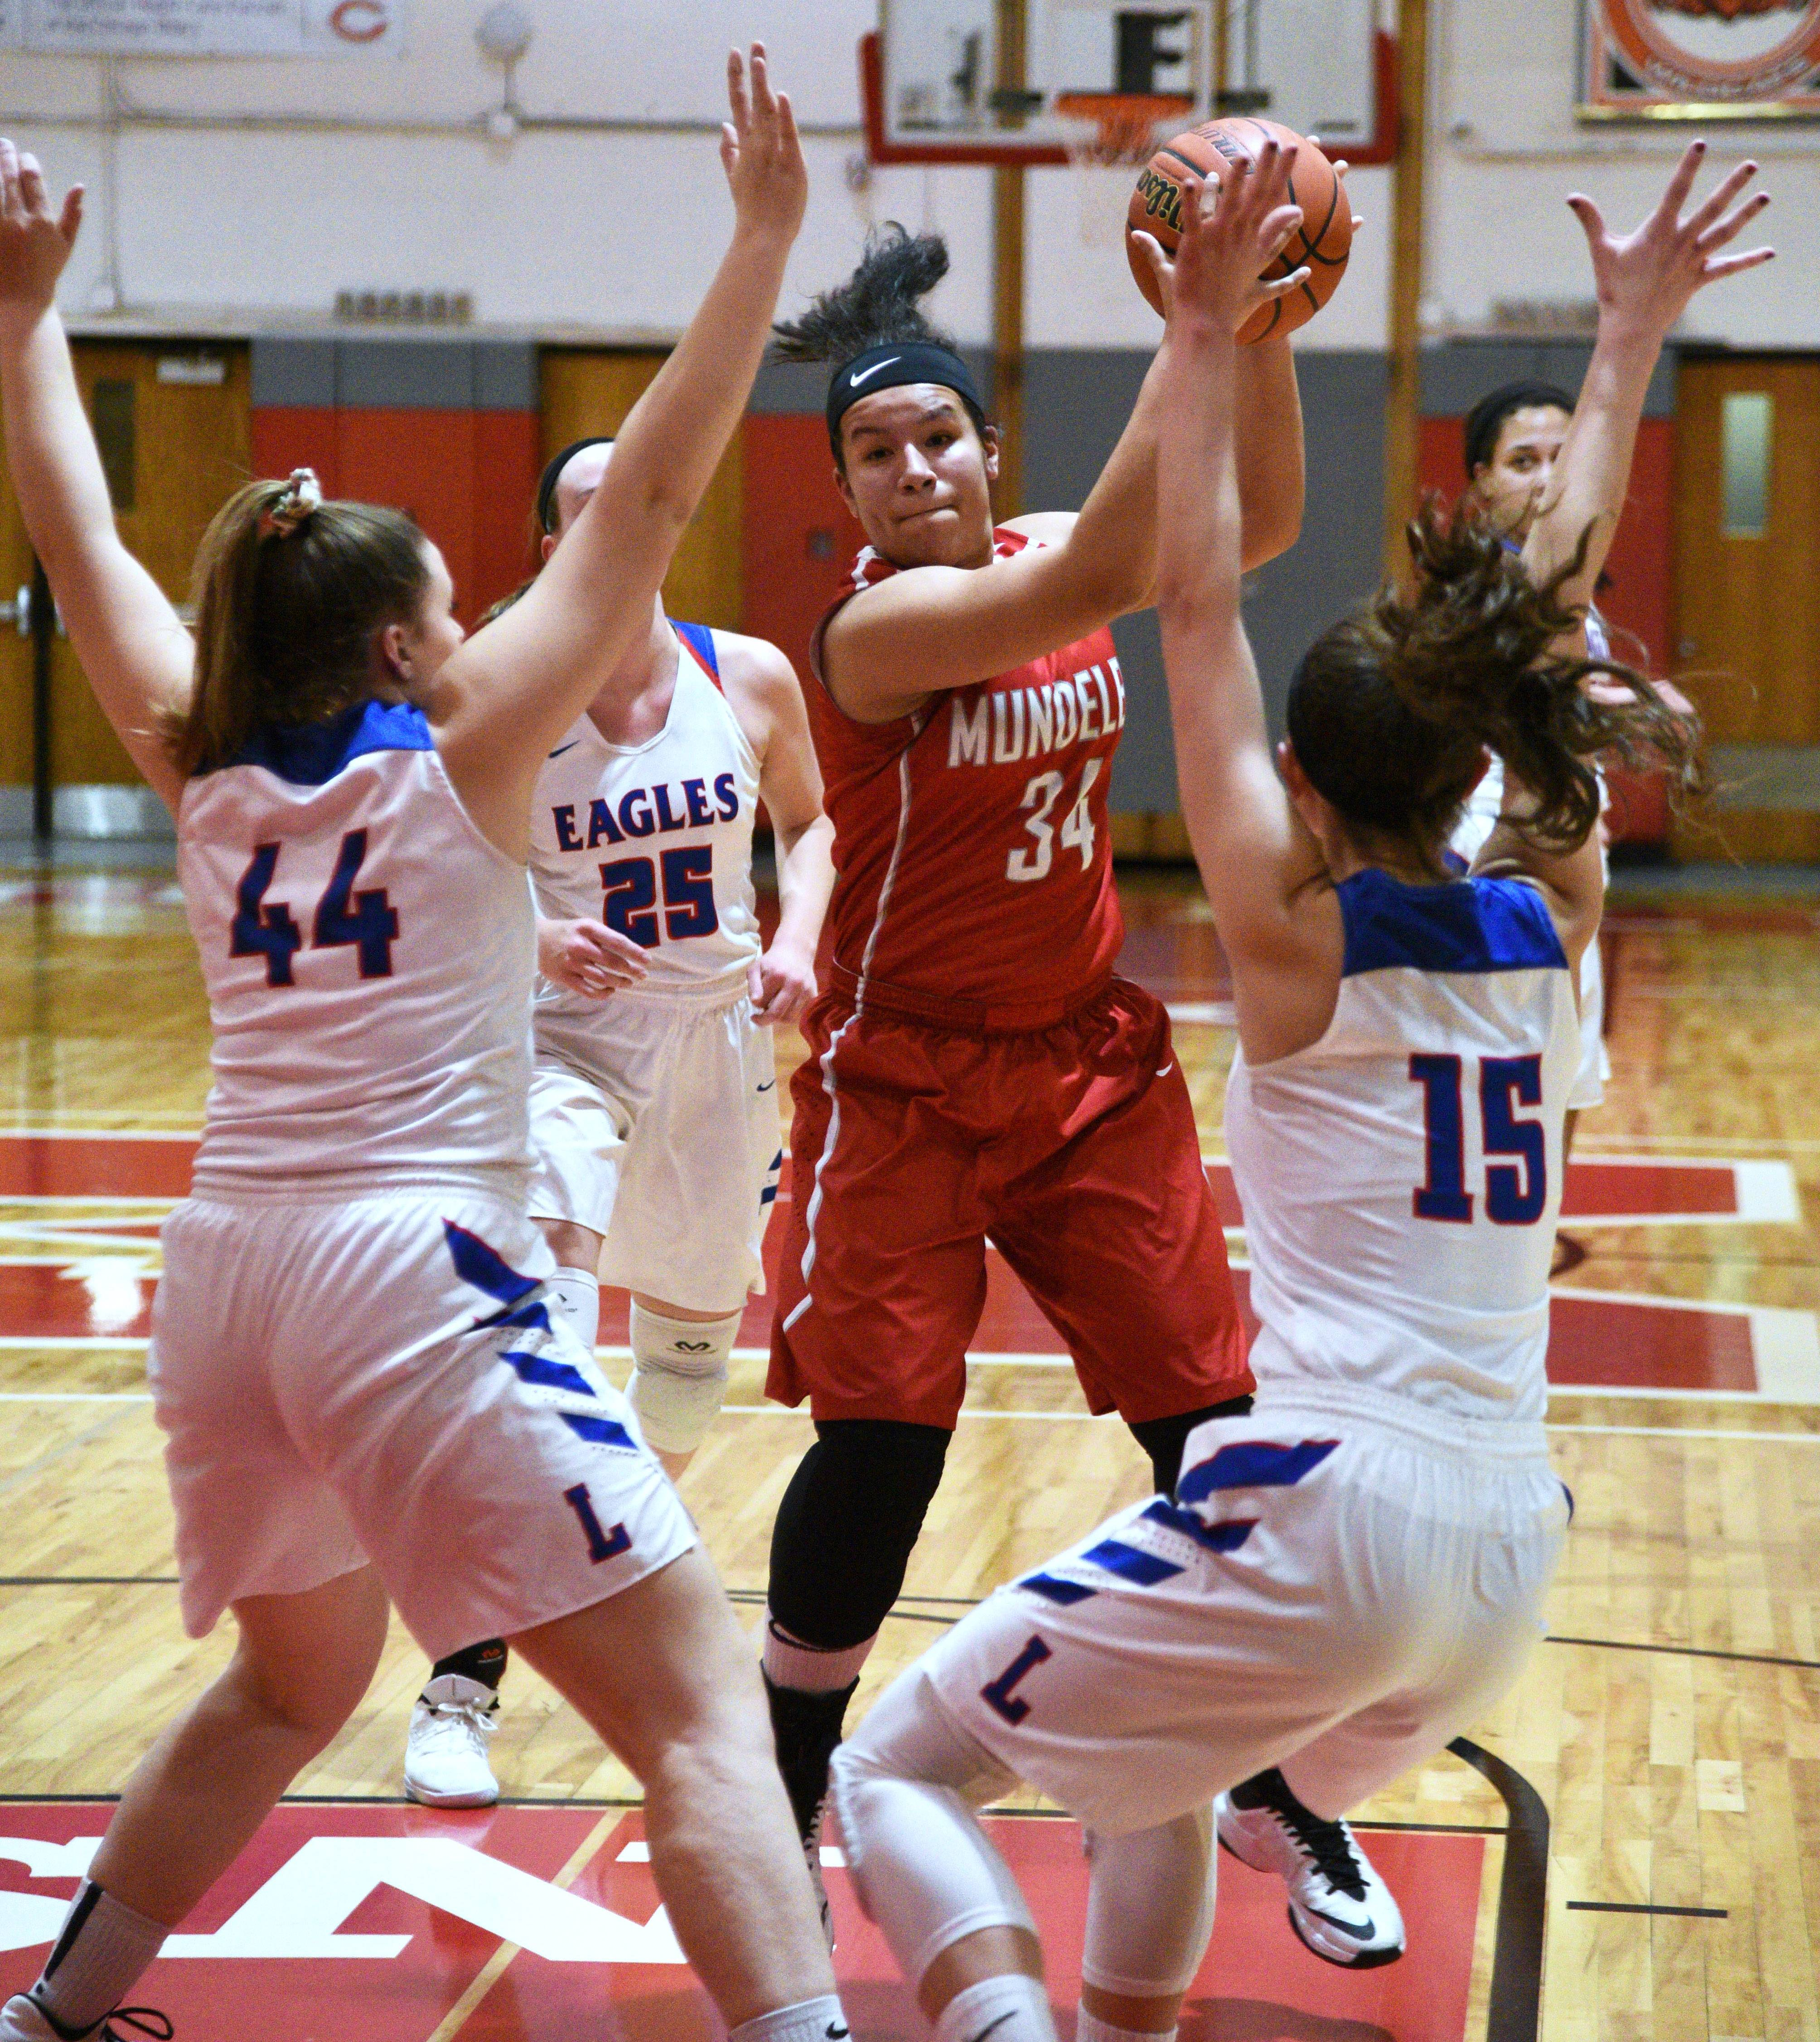 Mundelein's Kendall Klatt (34) is pressured by a host of Lakes players during Monday's girls regional basketball game in Mundelein.